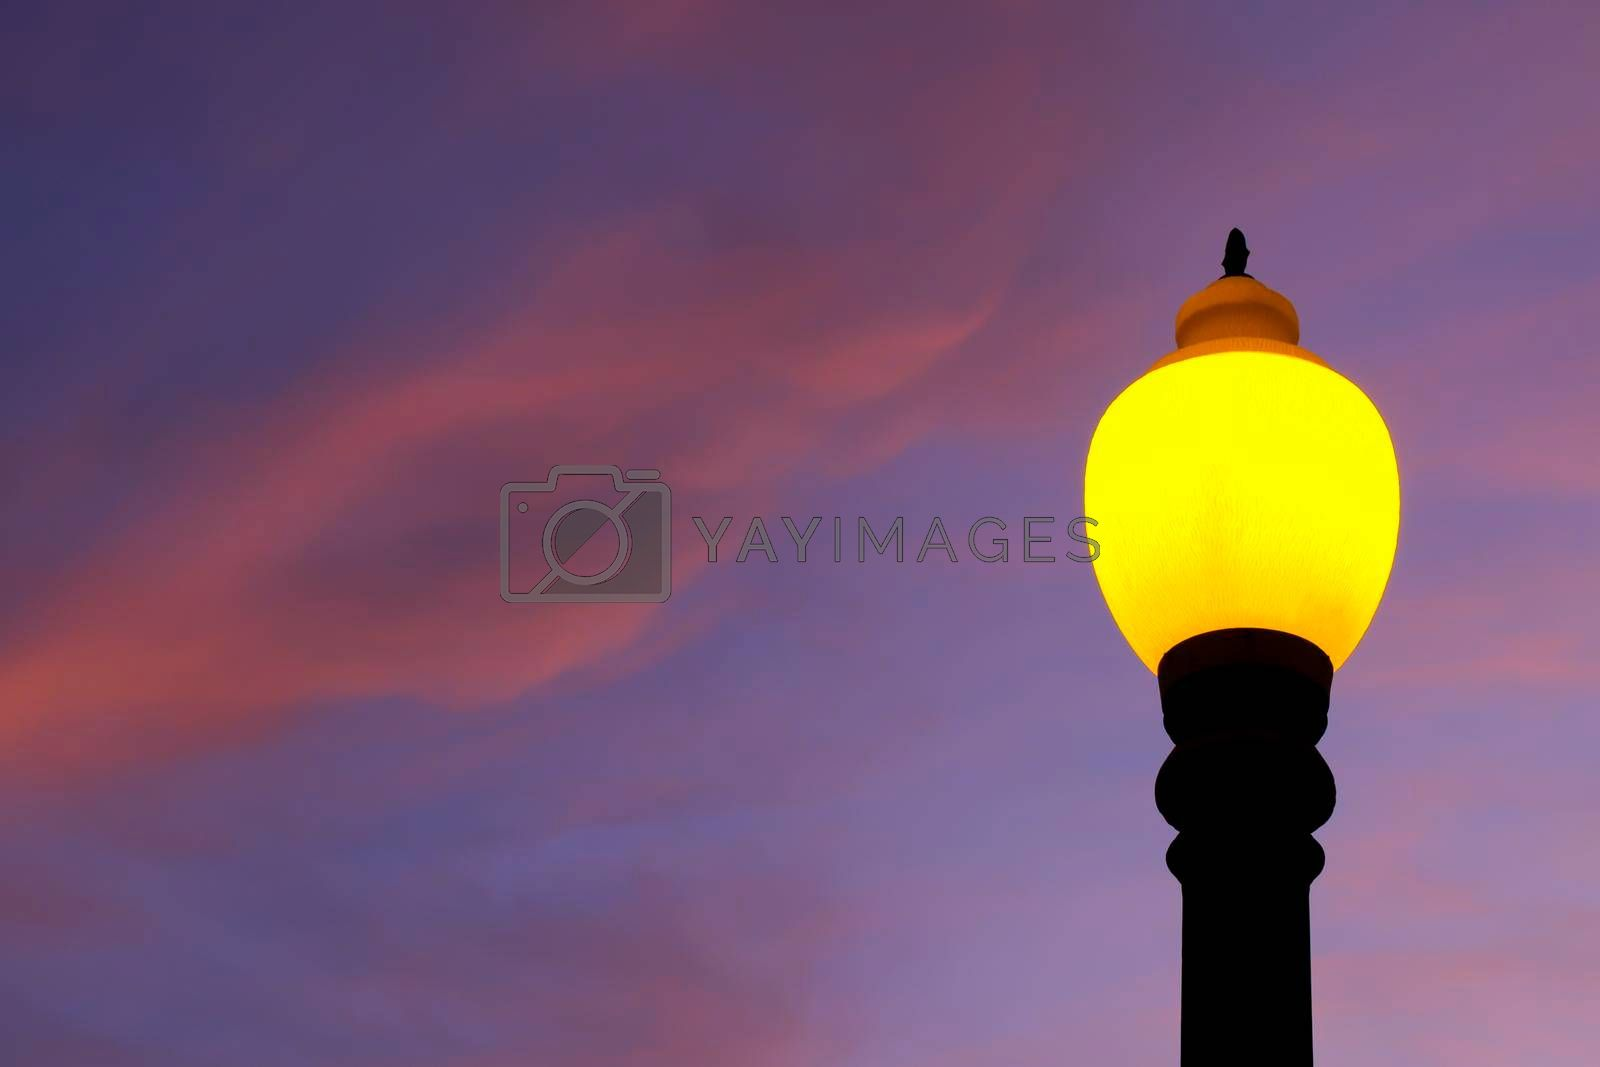 Royalty free image of Colorful lamppost in the afternoon. by soniabonet